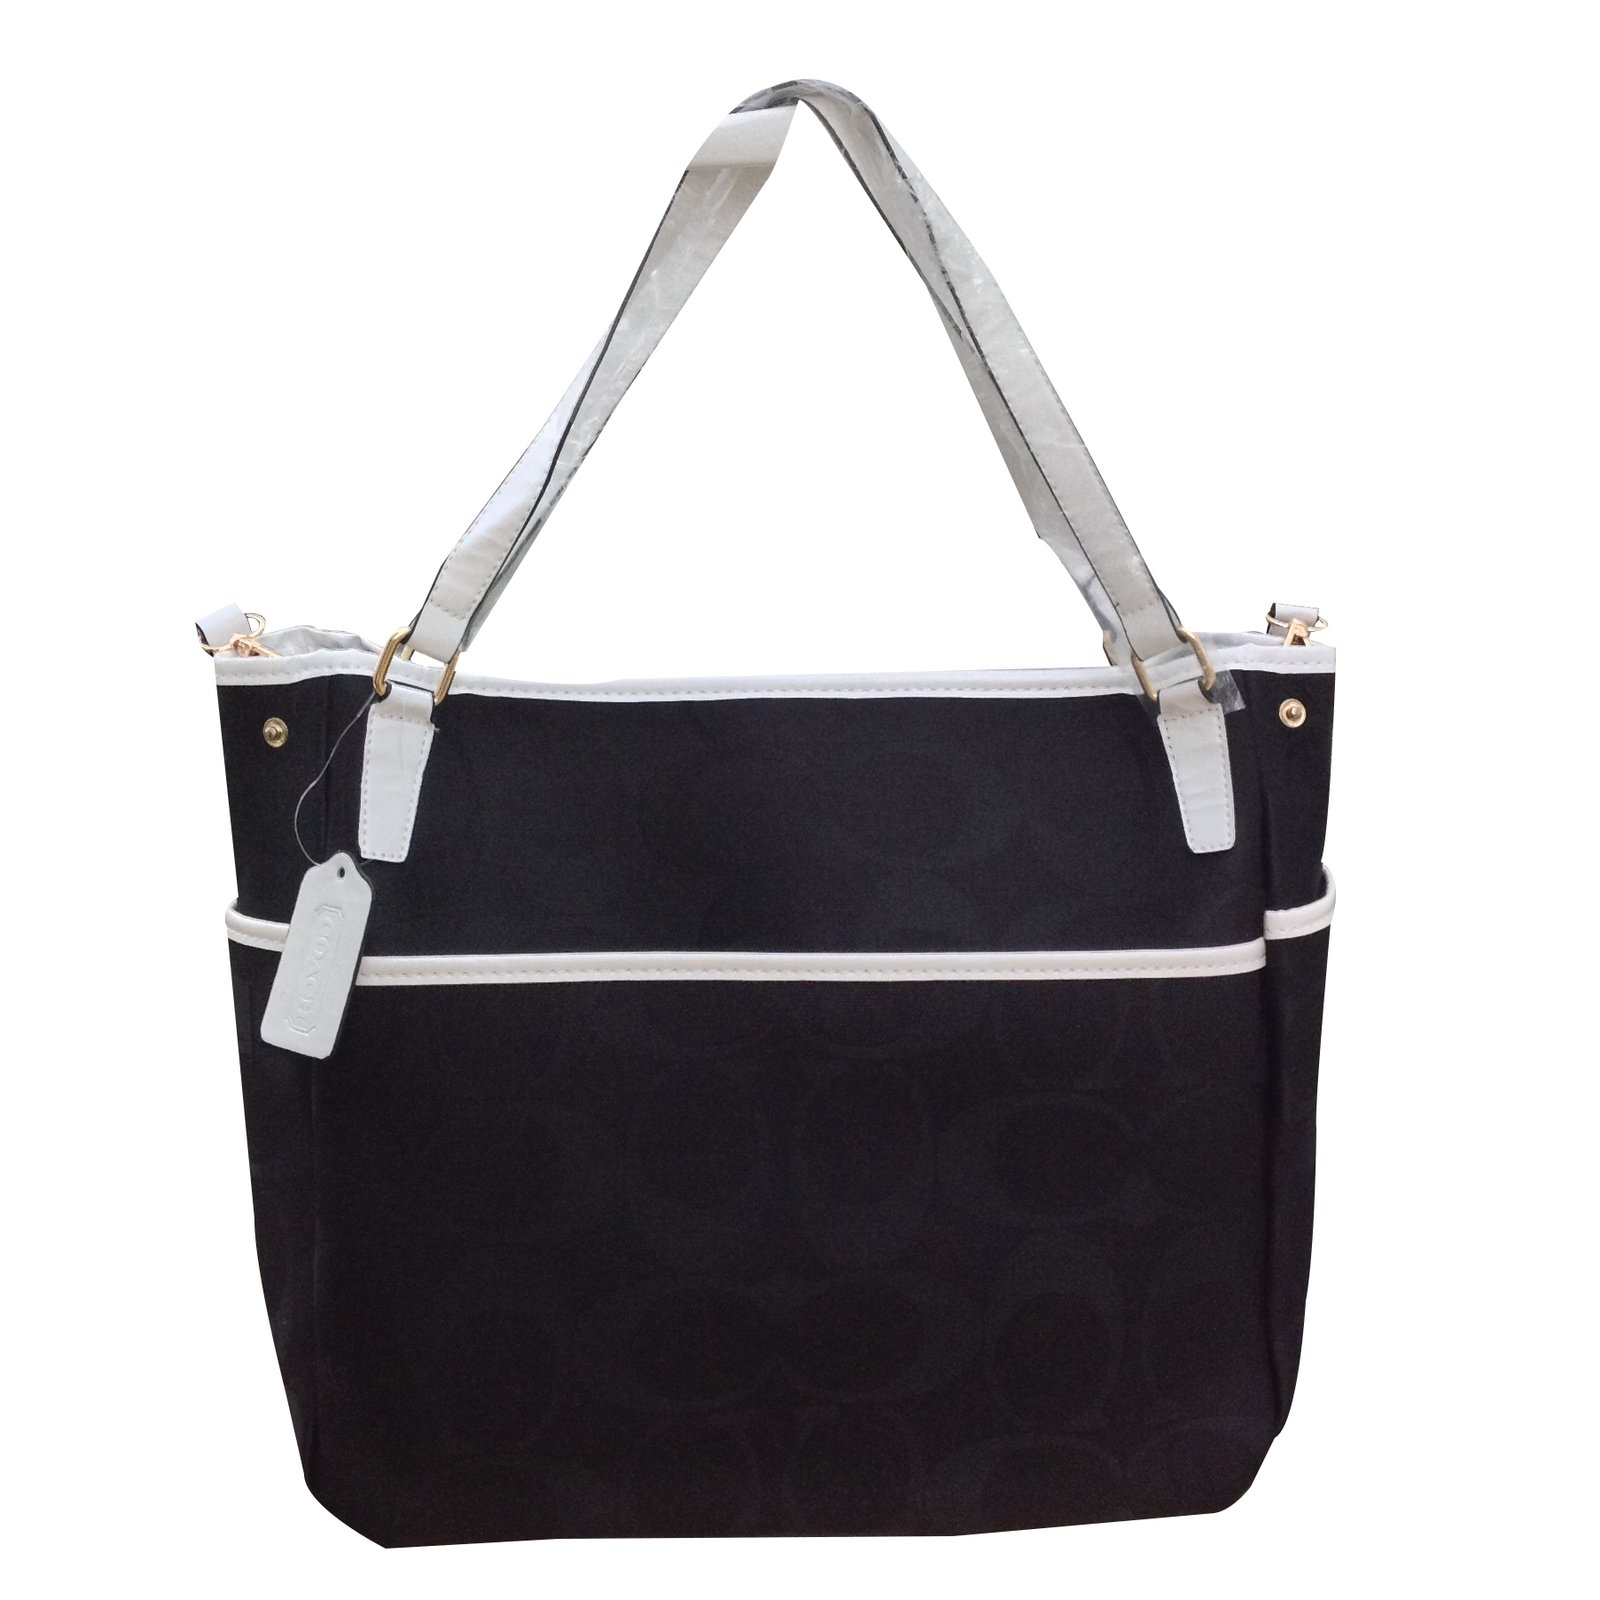 2b02a56a10 Coach Coach Signature Fabric Large Black Tote Handbags Cloth Multiple  colors ref.20970